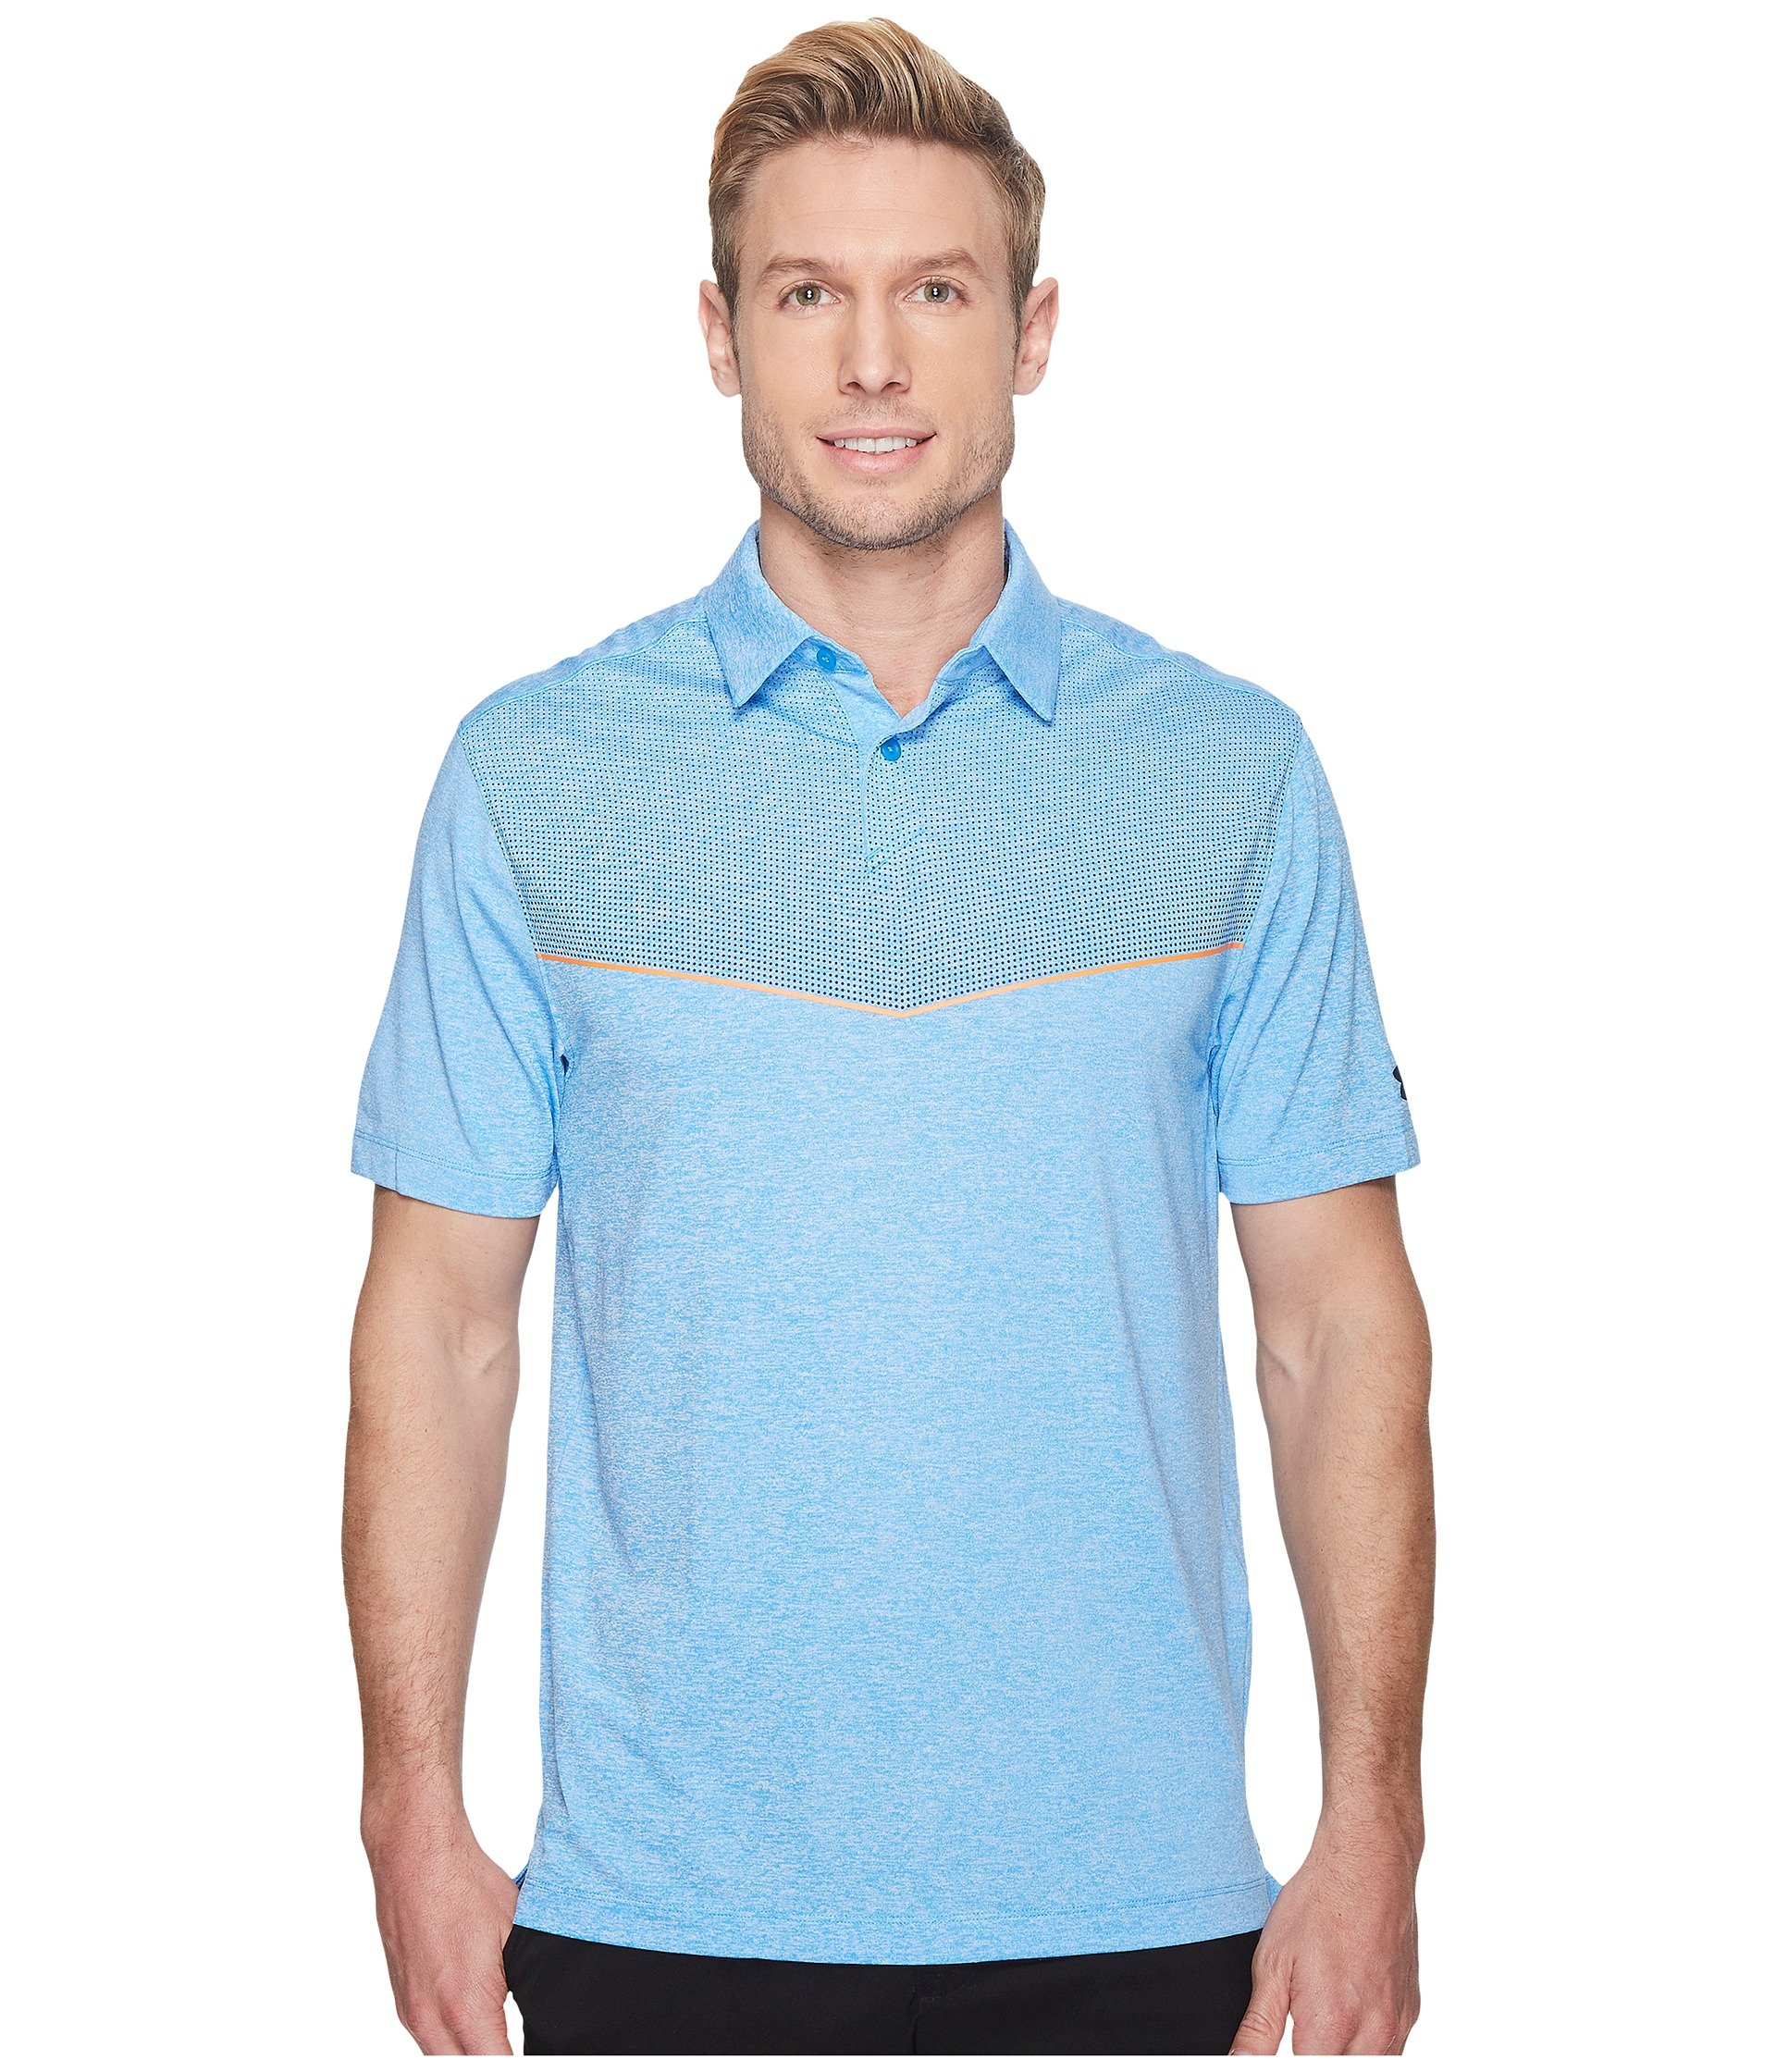 Camiseta Tipo Polo para Hombre Under Armour Golf CoolSwitch Graphic Polo  + Under Armour en VeoyCompro.net